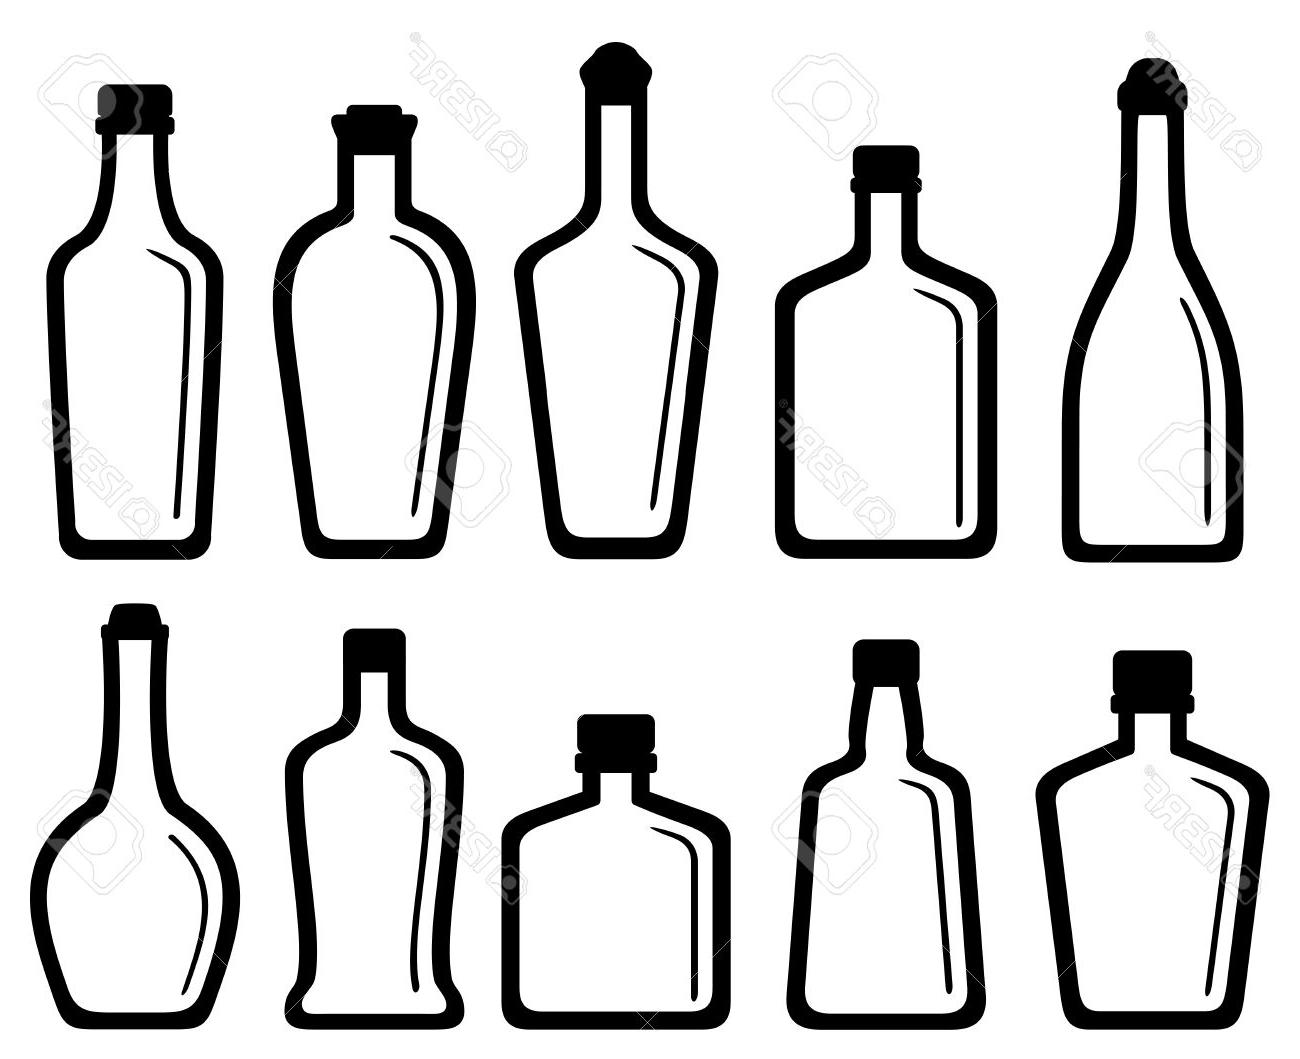 Bottle clipart black and white 4 » Clipart Station.